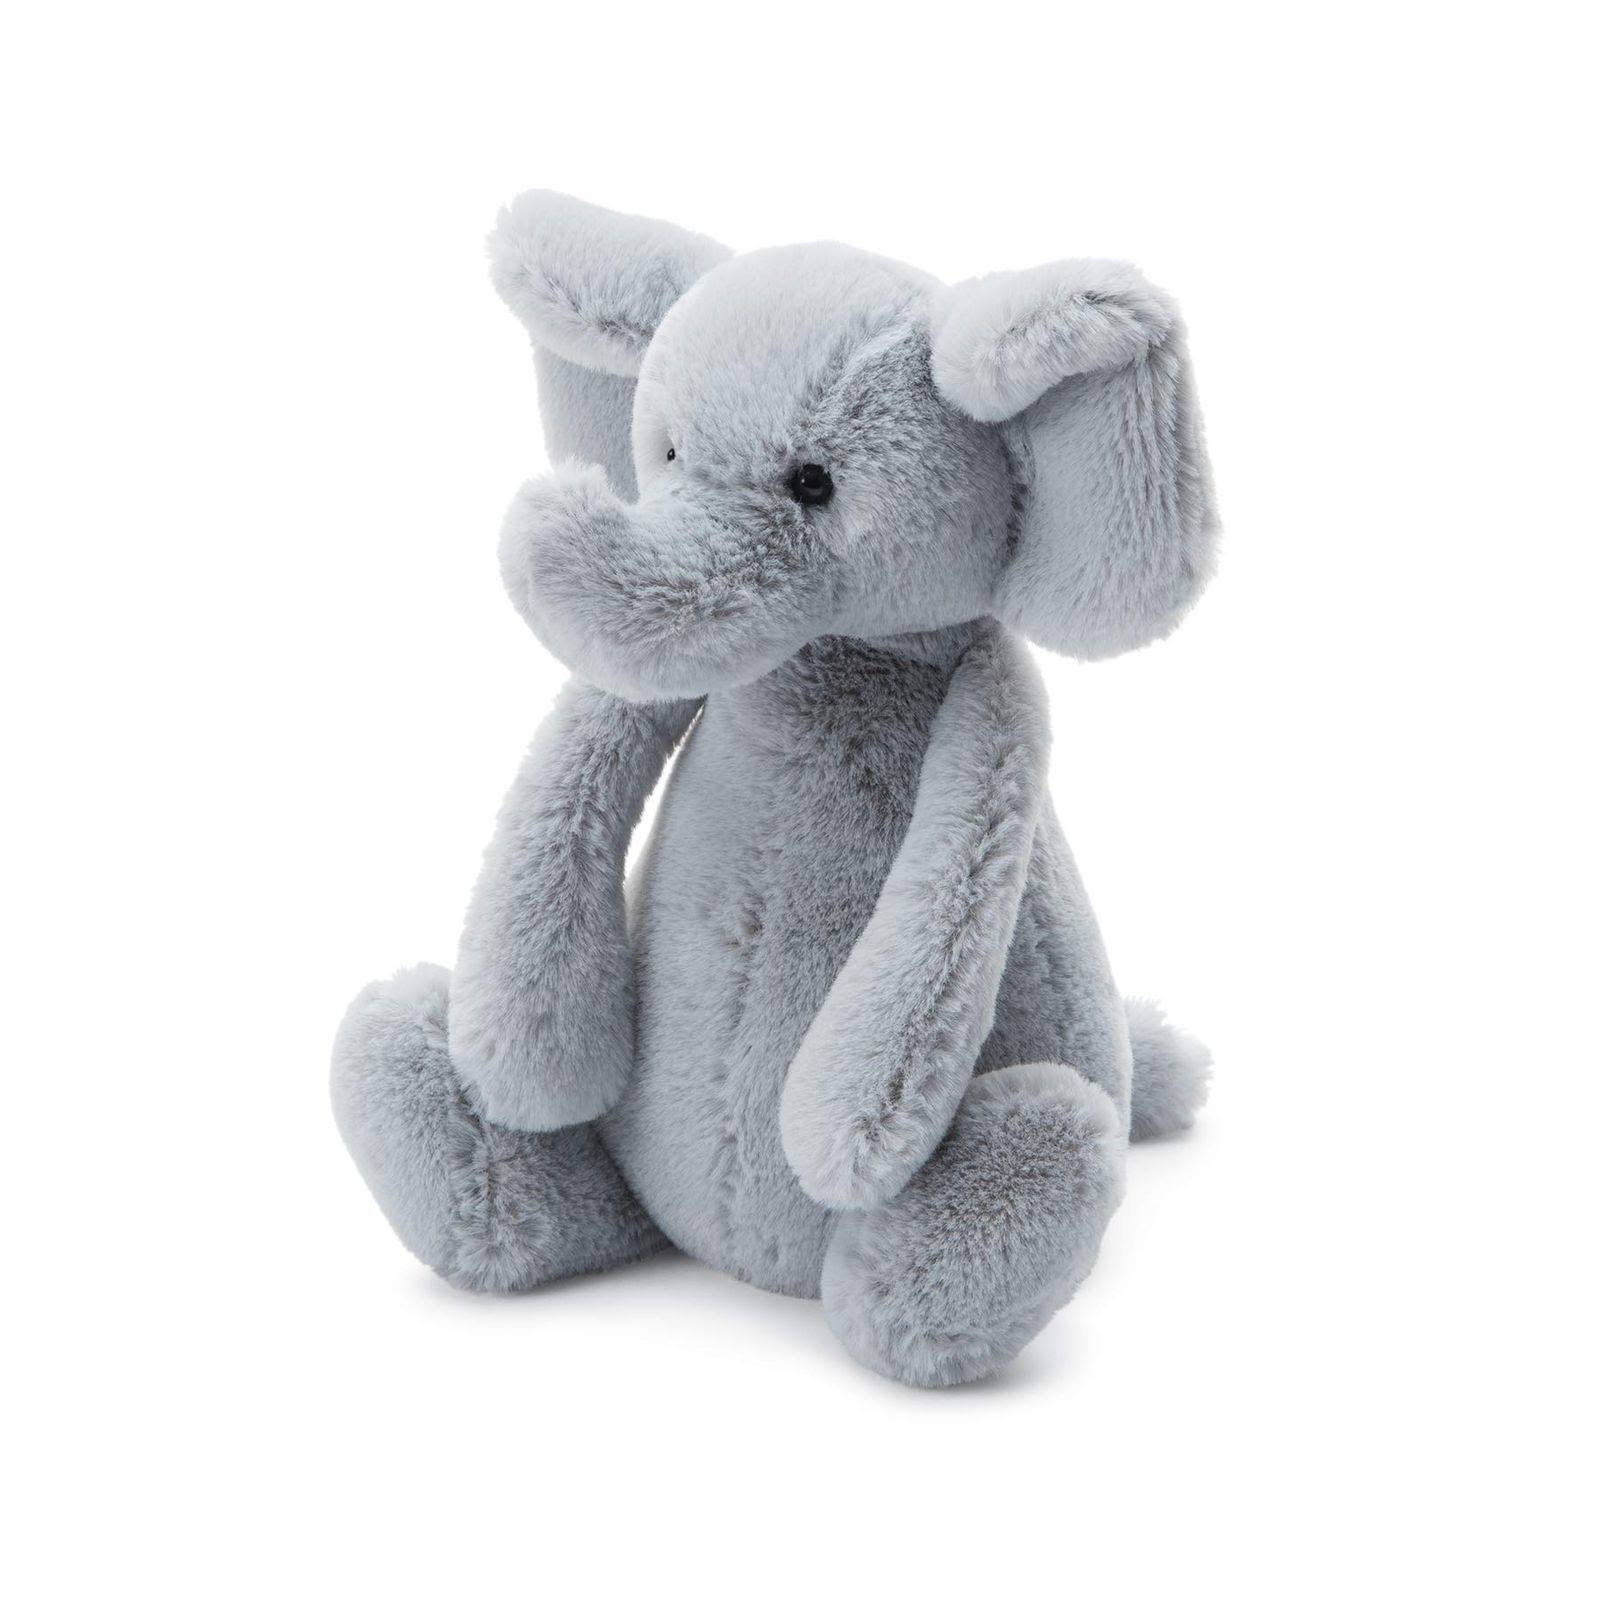 Jellycat Bashful Grey Elephant Stuffed Toy - Gray, 21""